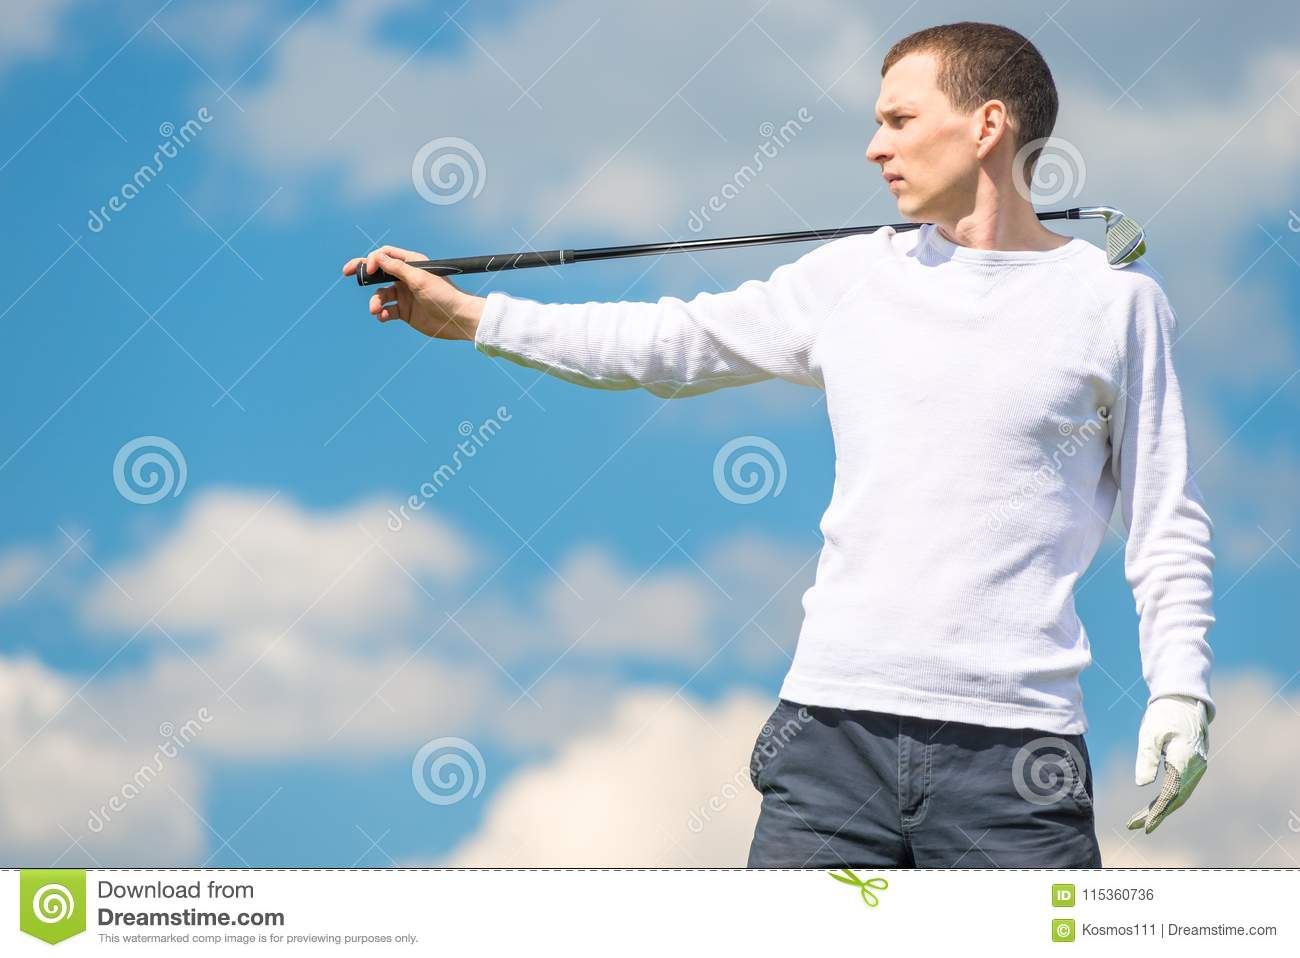 Serious Golfer Professional Posing With Golf Club On Blue Sky Ba